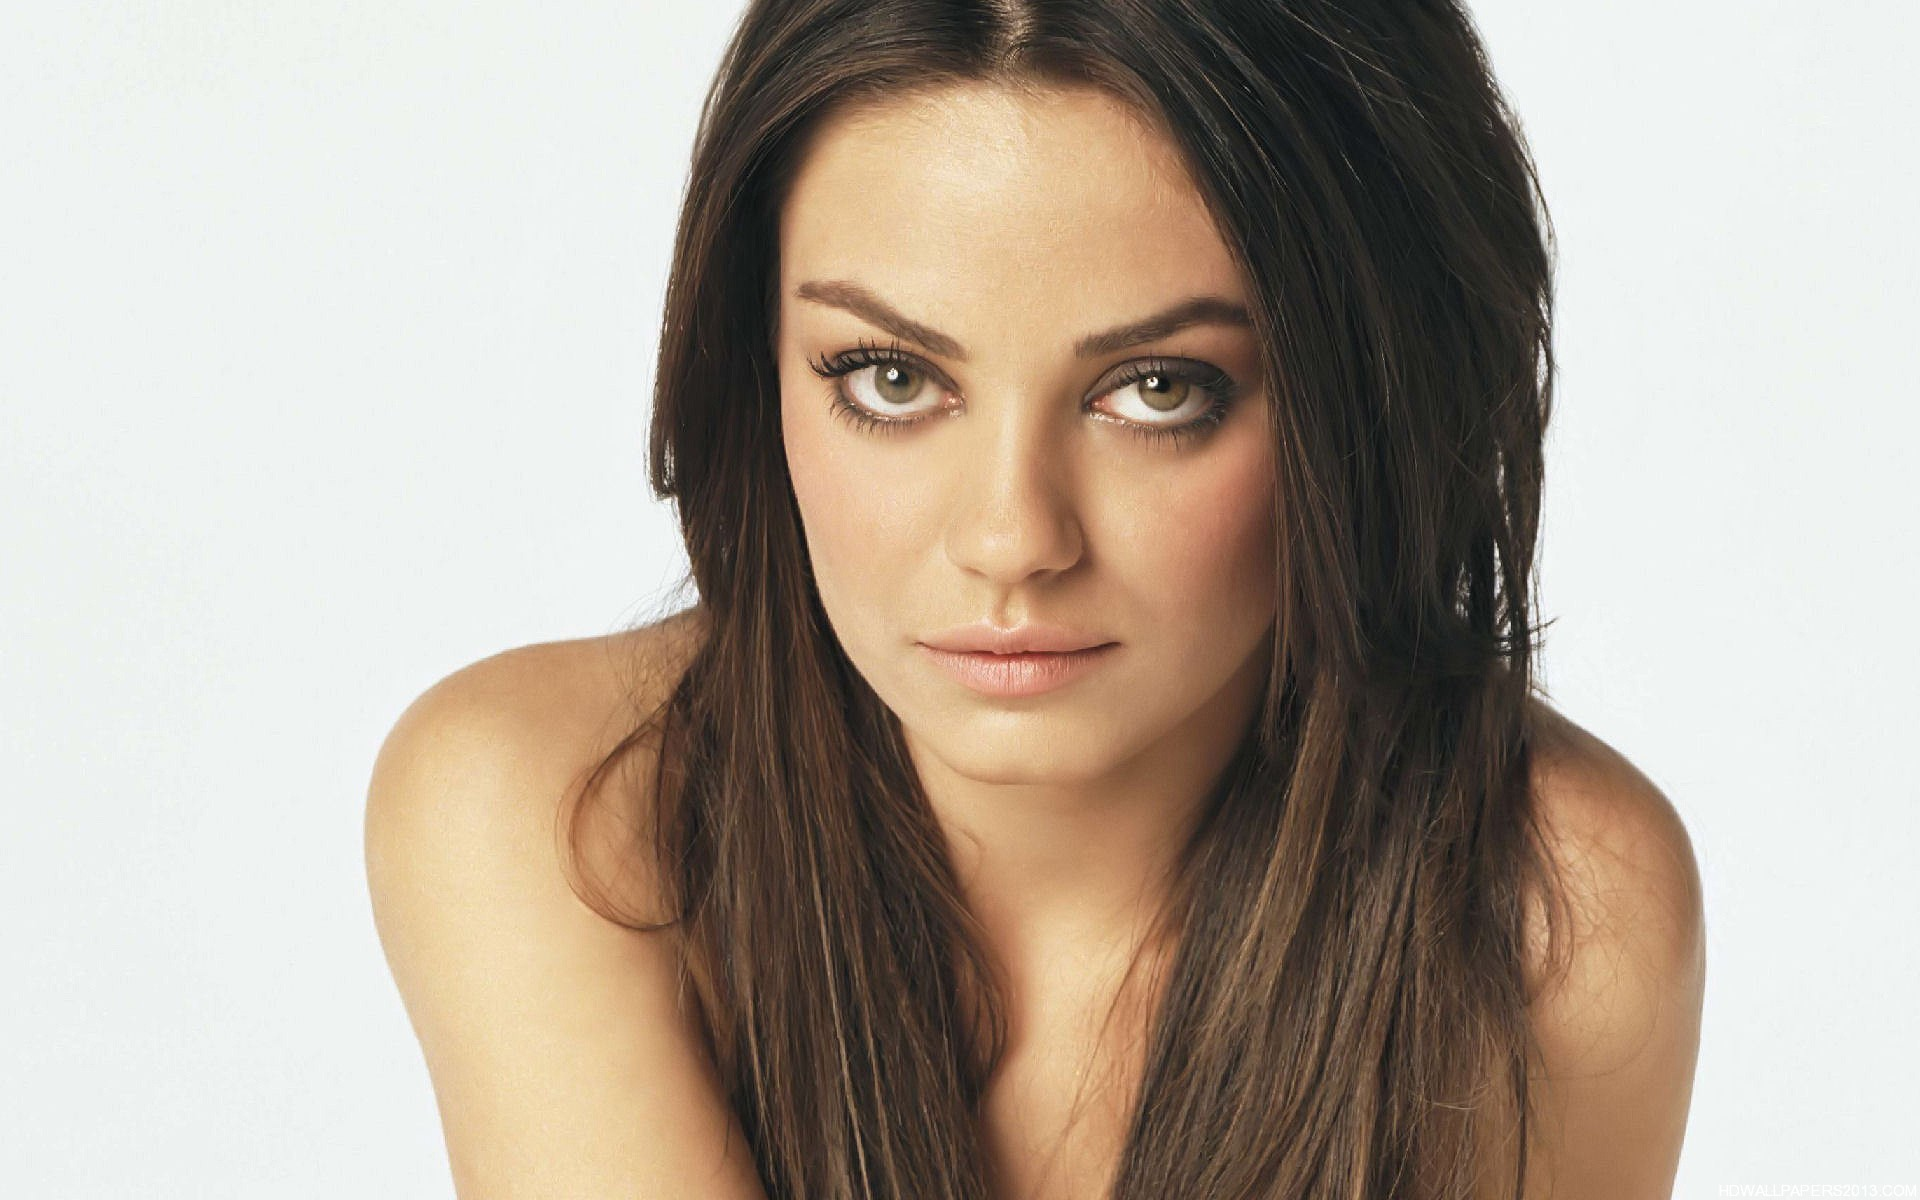 mila kunis 2012 | high definition wallpapers, high definition